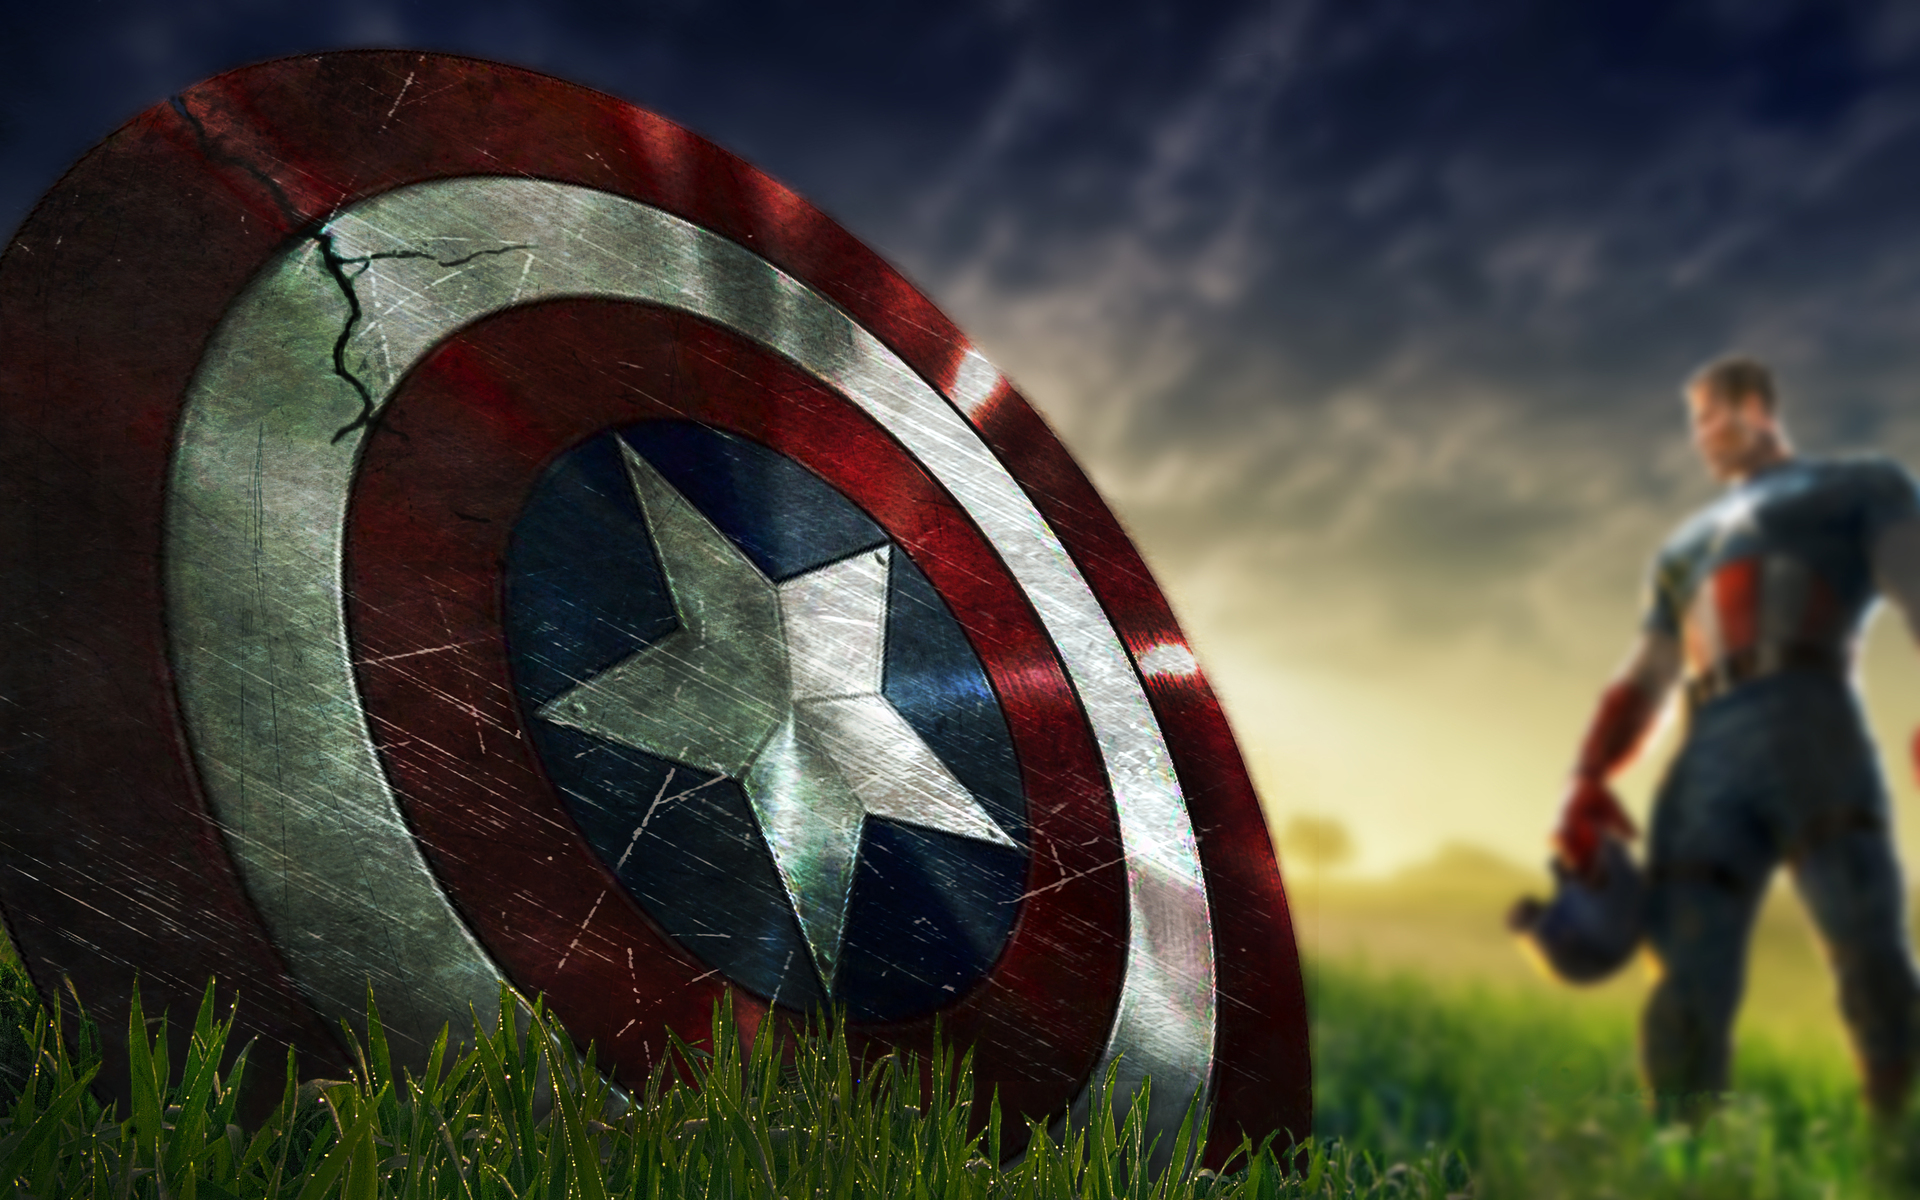 Hd wallpaper captain america - Captain America Shield Wallpapers And Backgrounds Attachment 4300 Hd